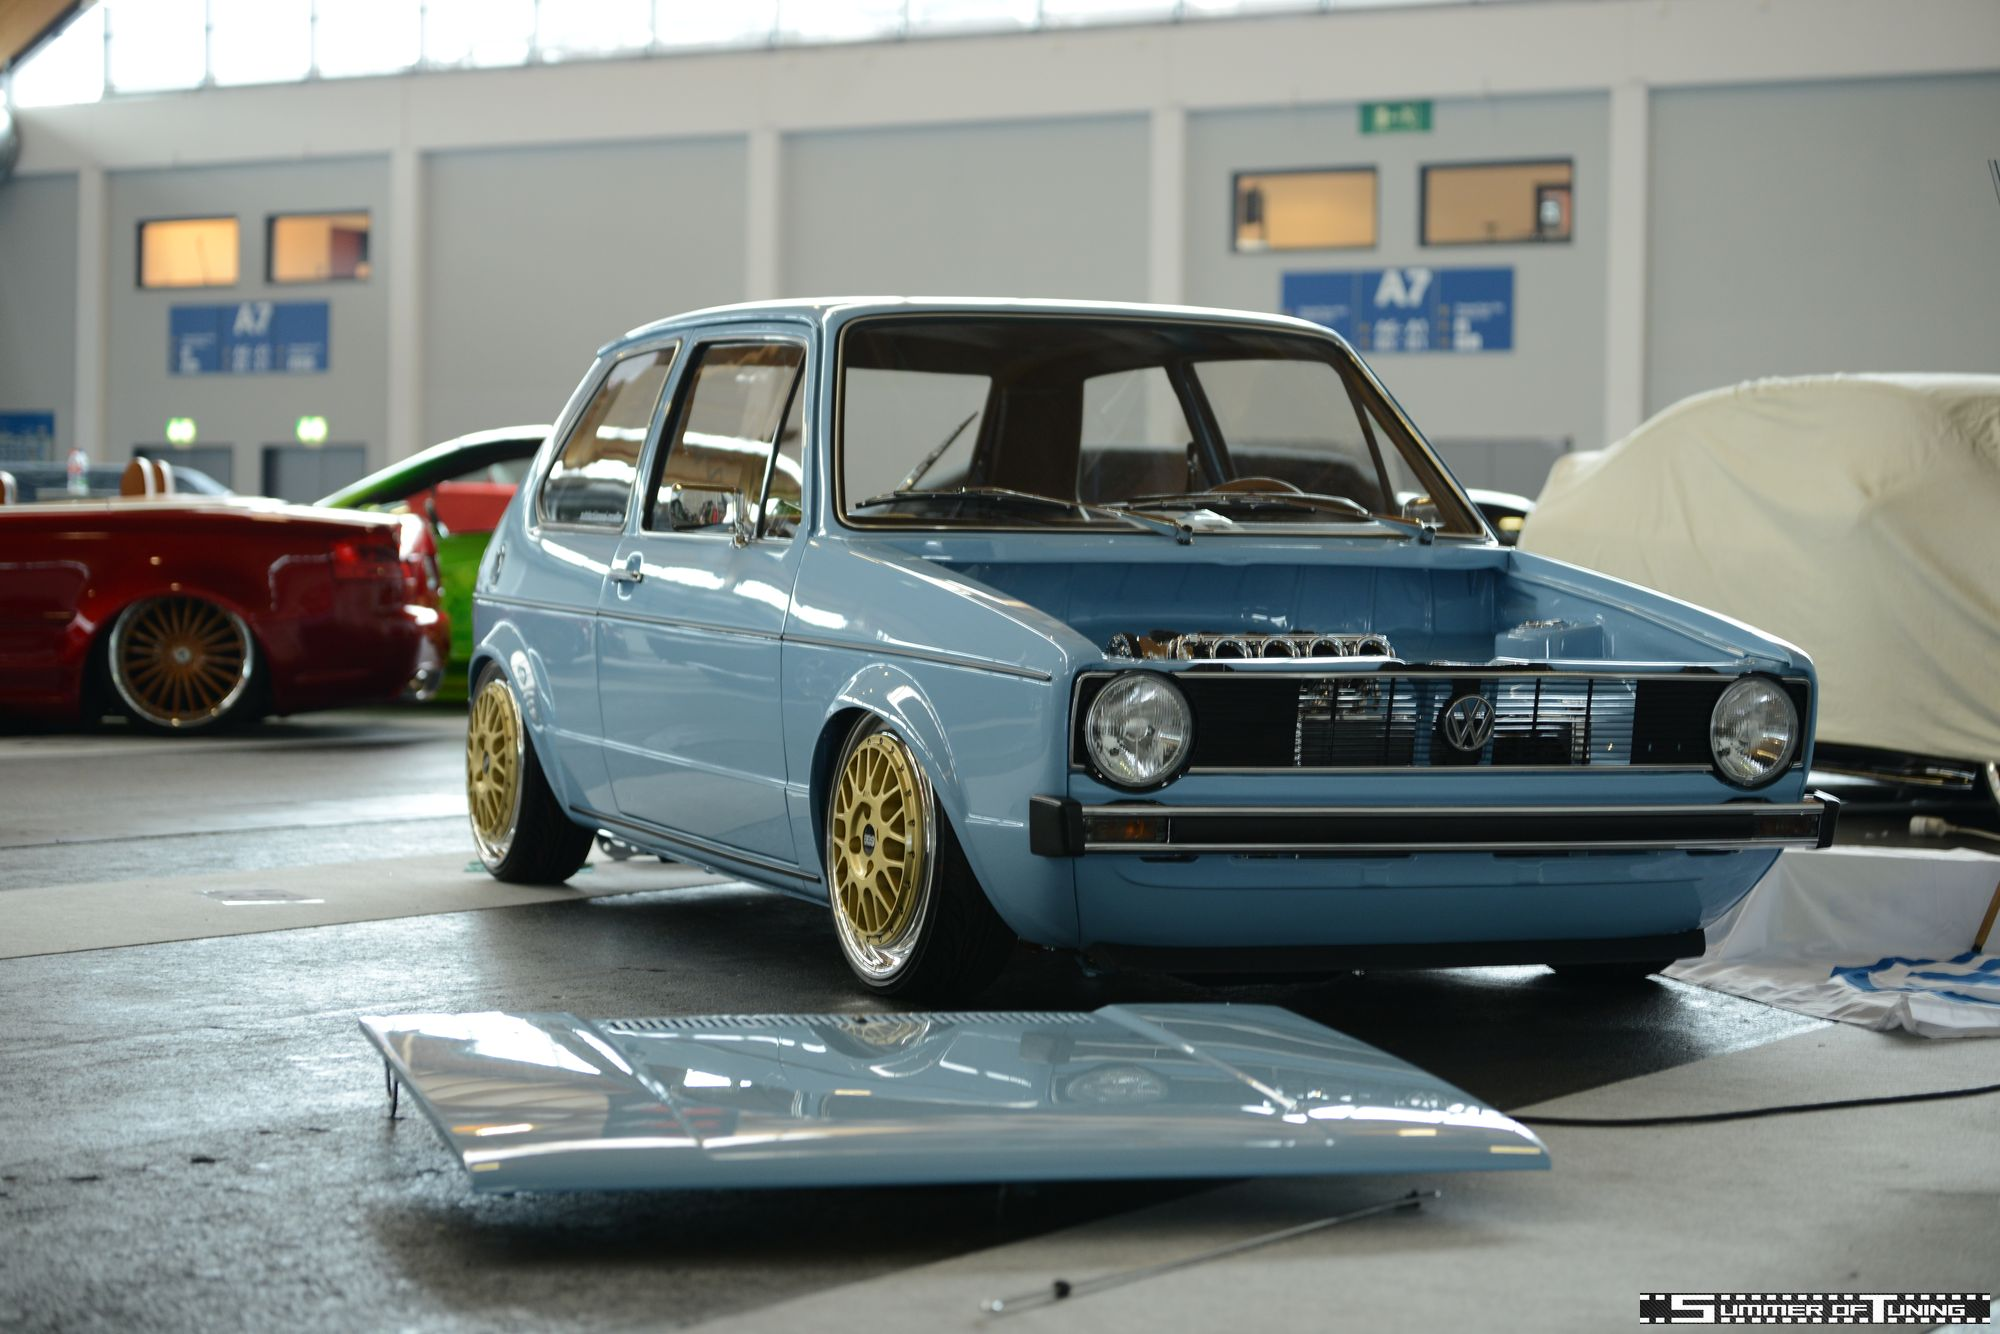 VW Golf Mk1 Jörg Ballermann